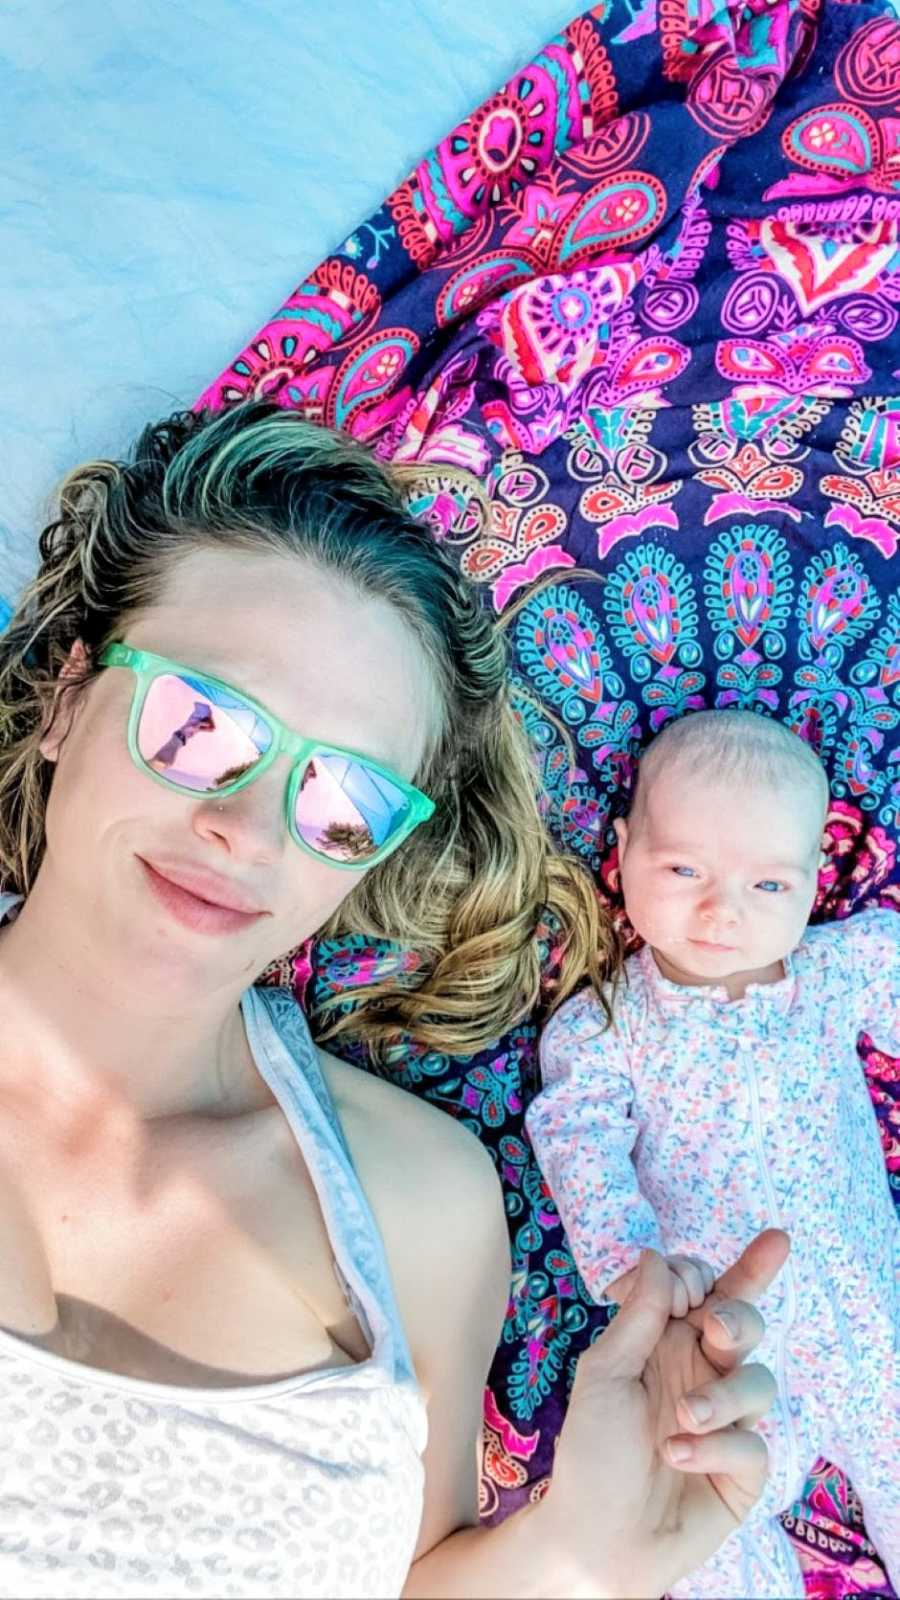 Mom and newborn daughter enjoy a sunny day together while laying out on some blankets